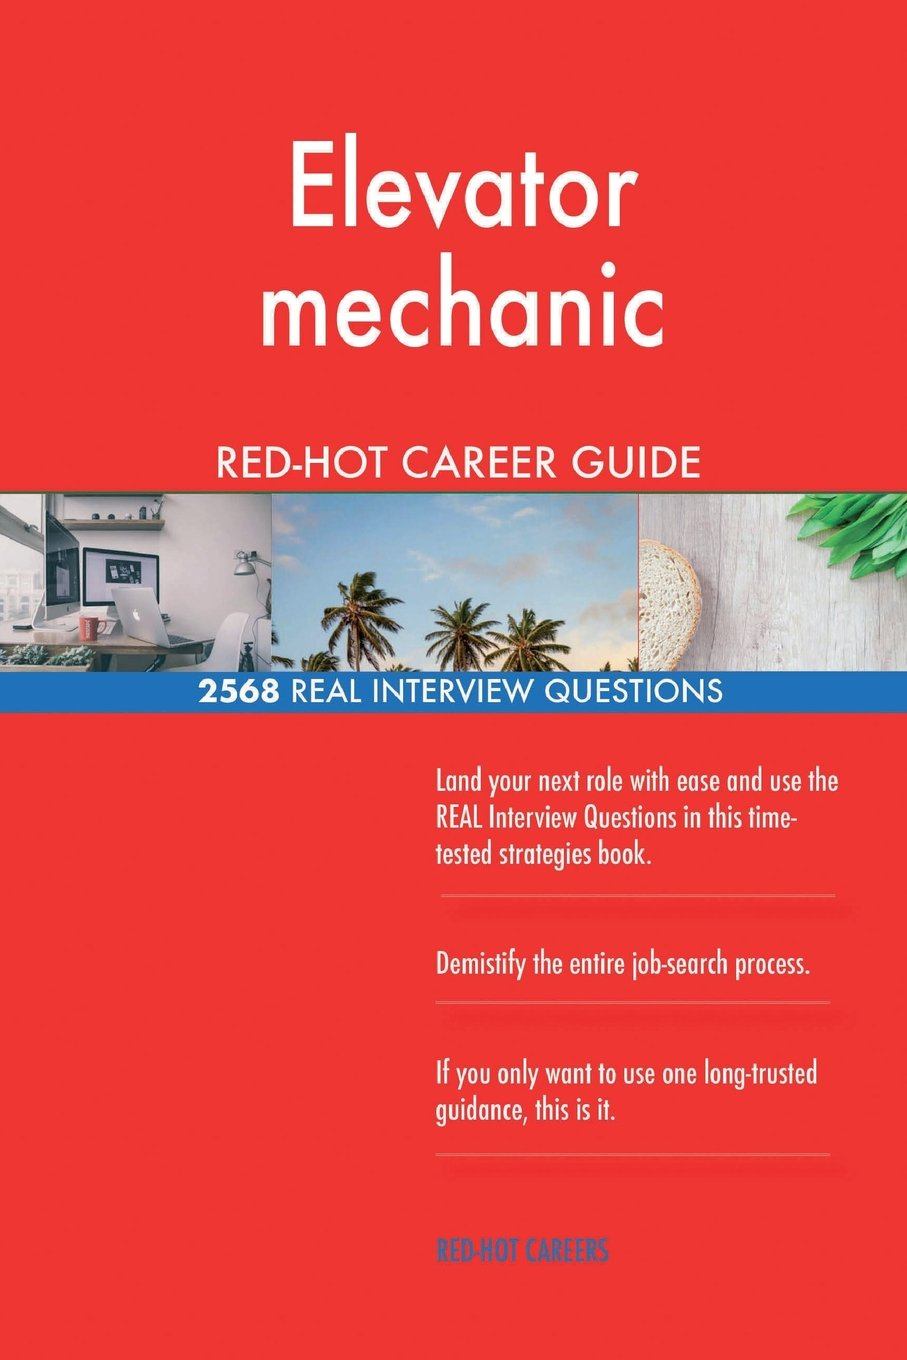 Elevator mechanic RED-HOT Career Guide